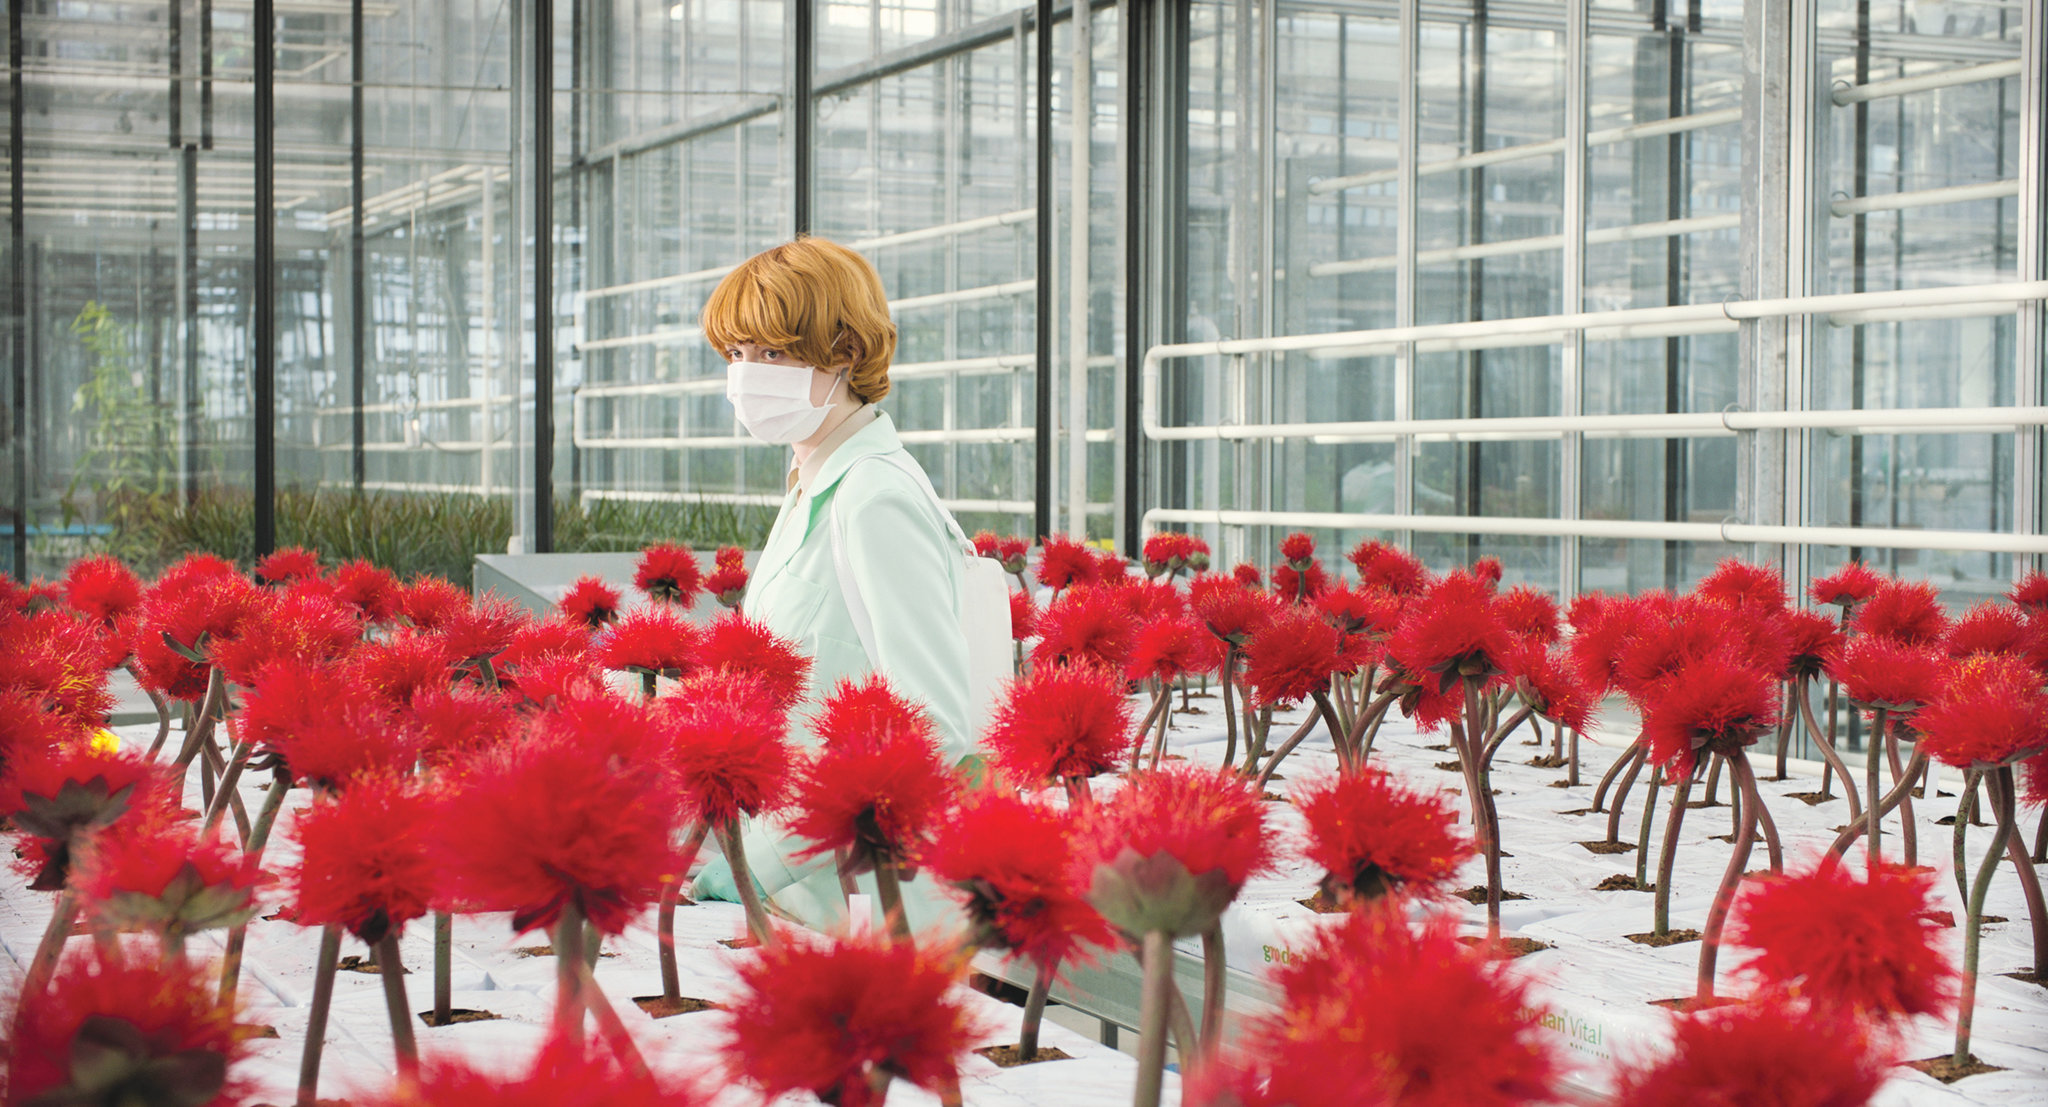 Character looking at red flowers